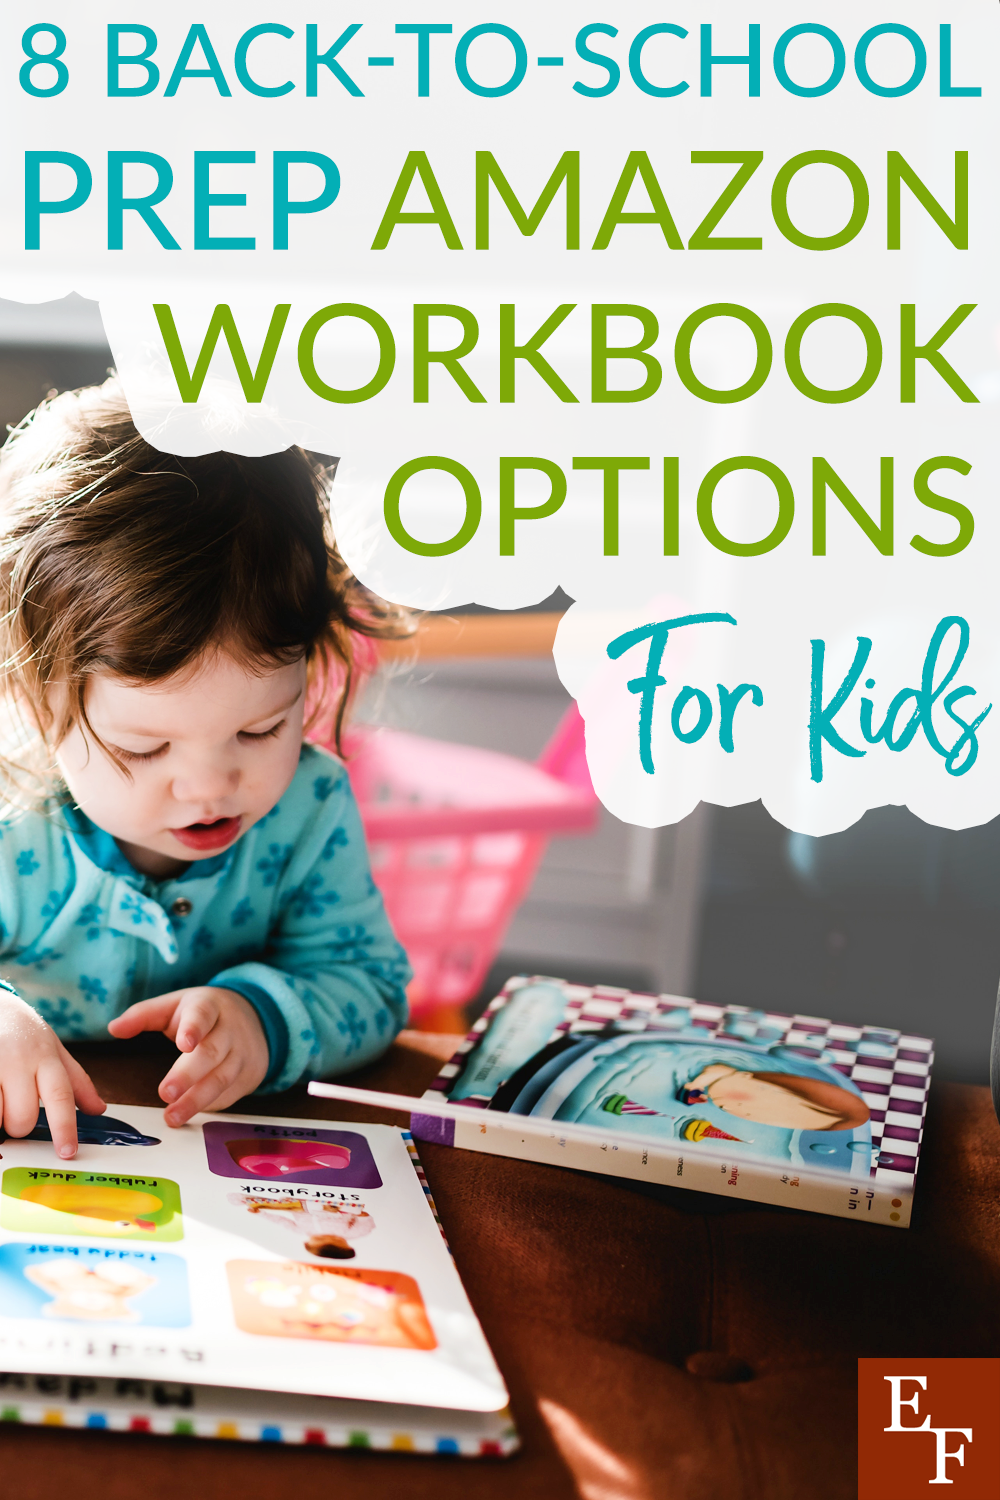 Keep your children busy this summer with Amazon workbooks for kids. They have plenty of options that are cheap and help keep your children's minds active.